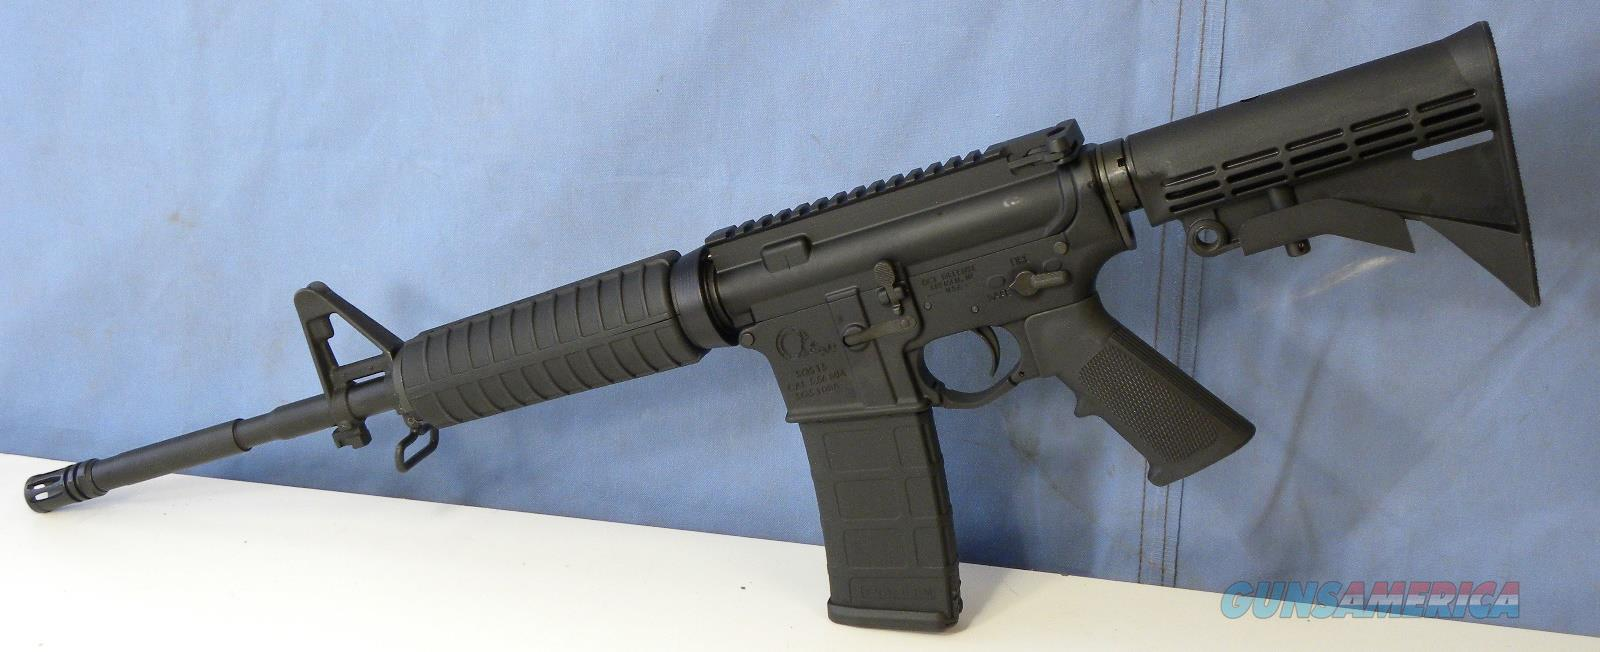 BCI Domestic Defense SQS15  Guns > Rifles > AR-15 Rifles - Small Manufacturers > Complete Rifle